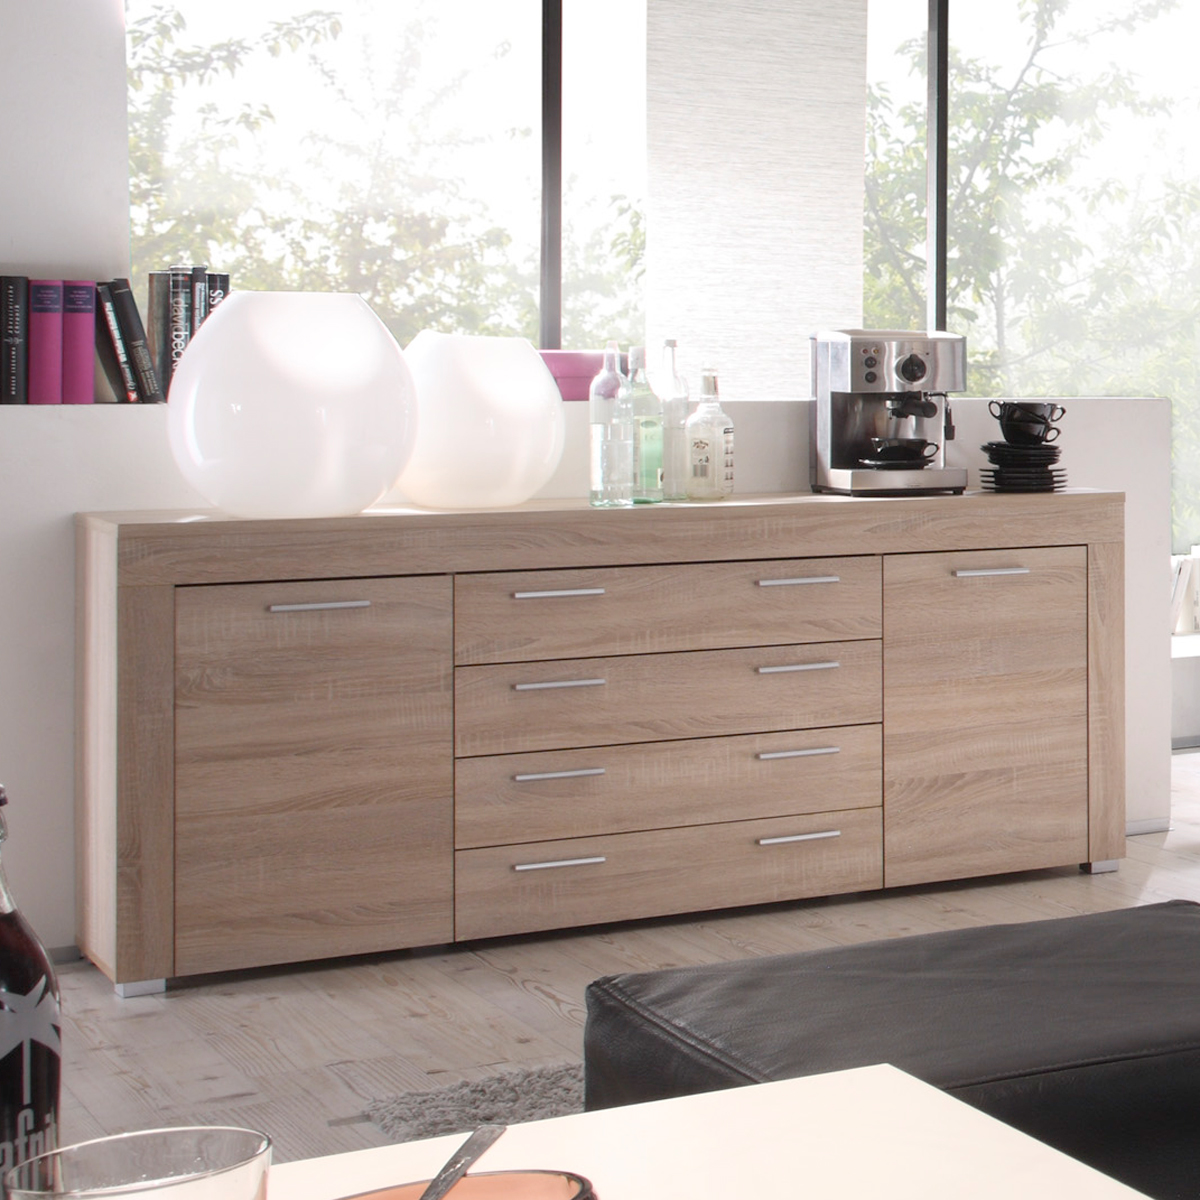 sideboard boom kommode wohnzimmer schrank in sonoma eiche. Black Bedroom Furniture Sets. Home Design Ideas